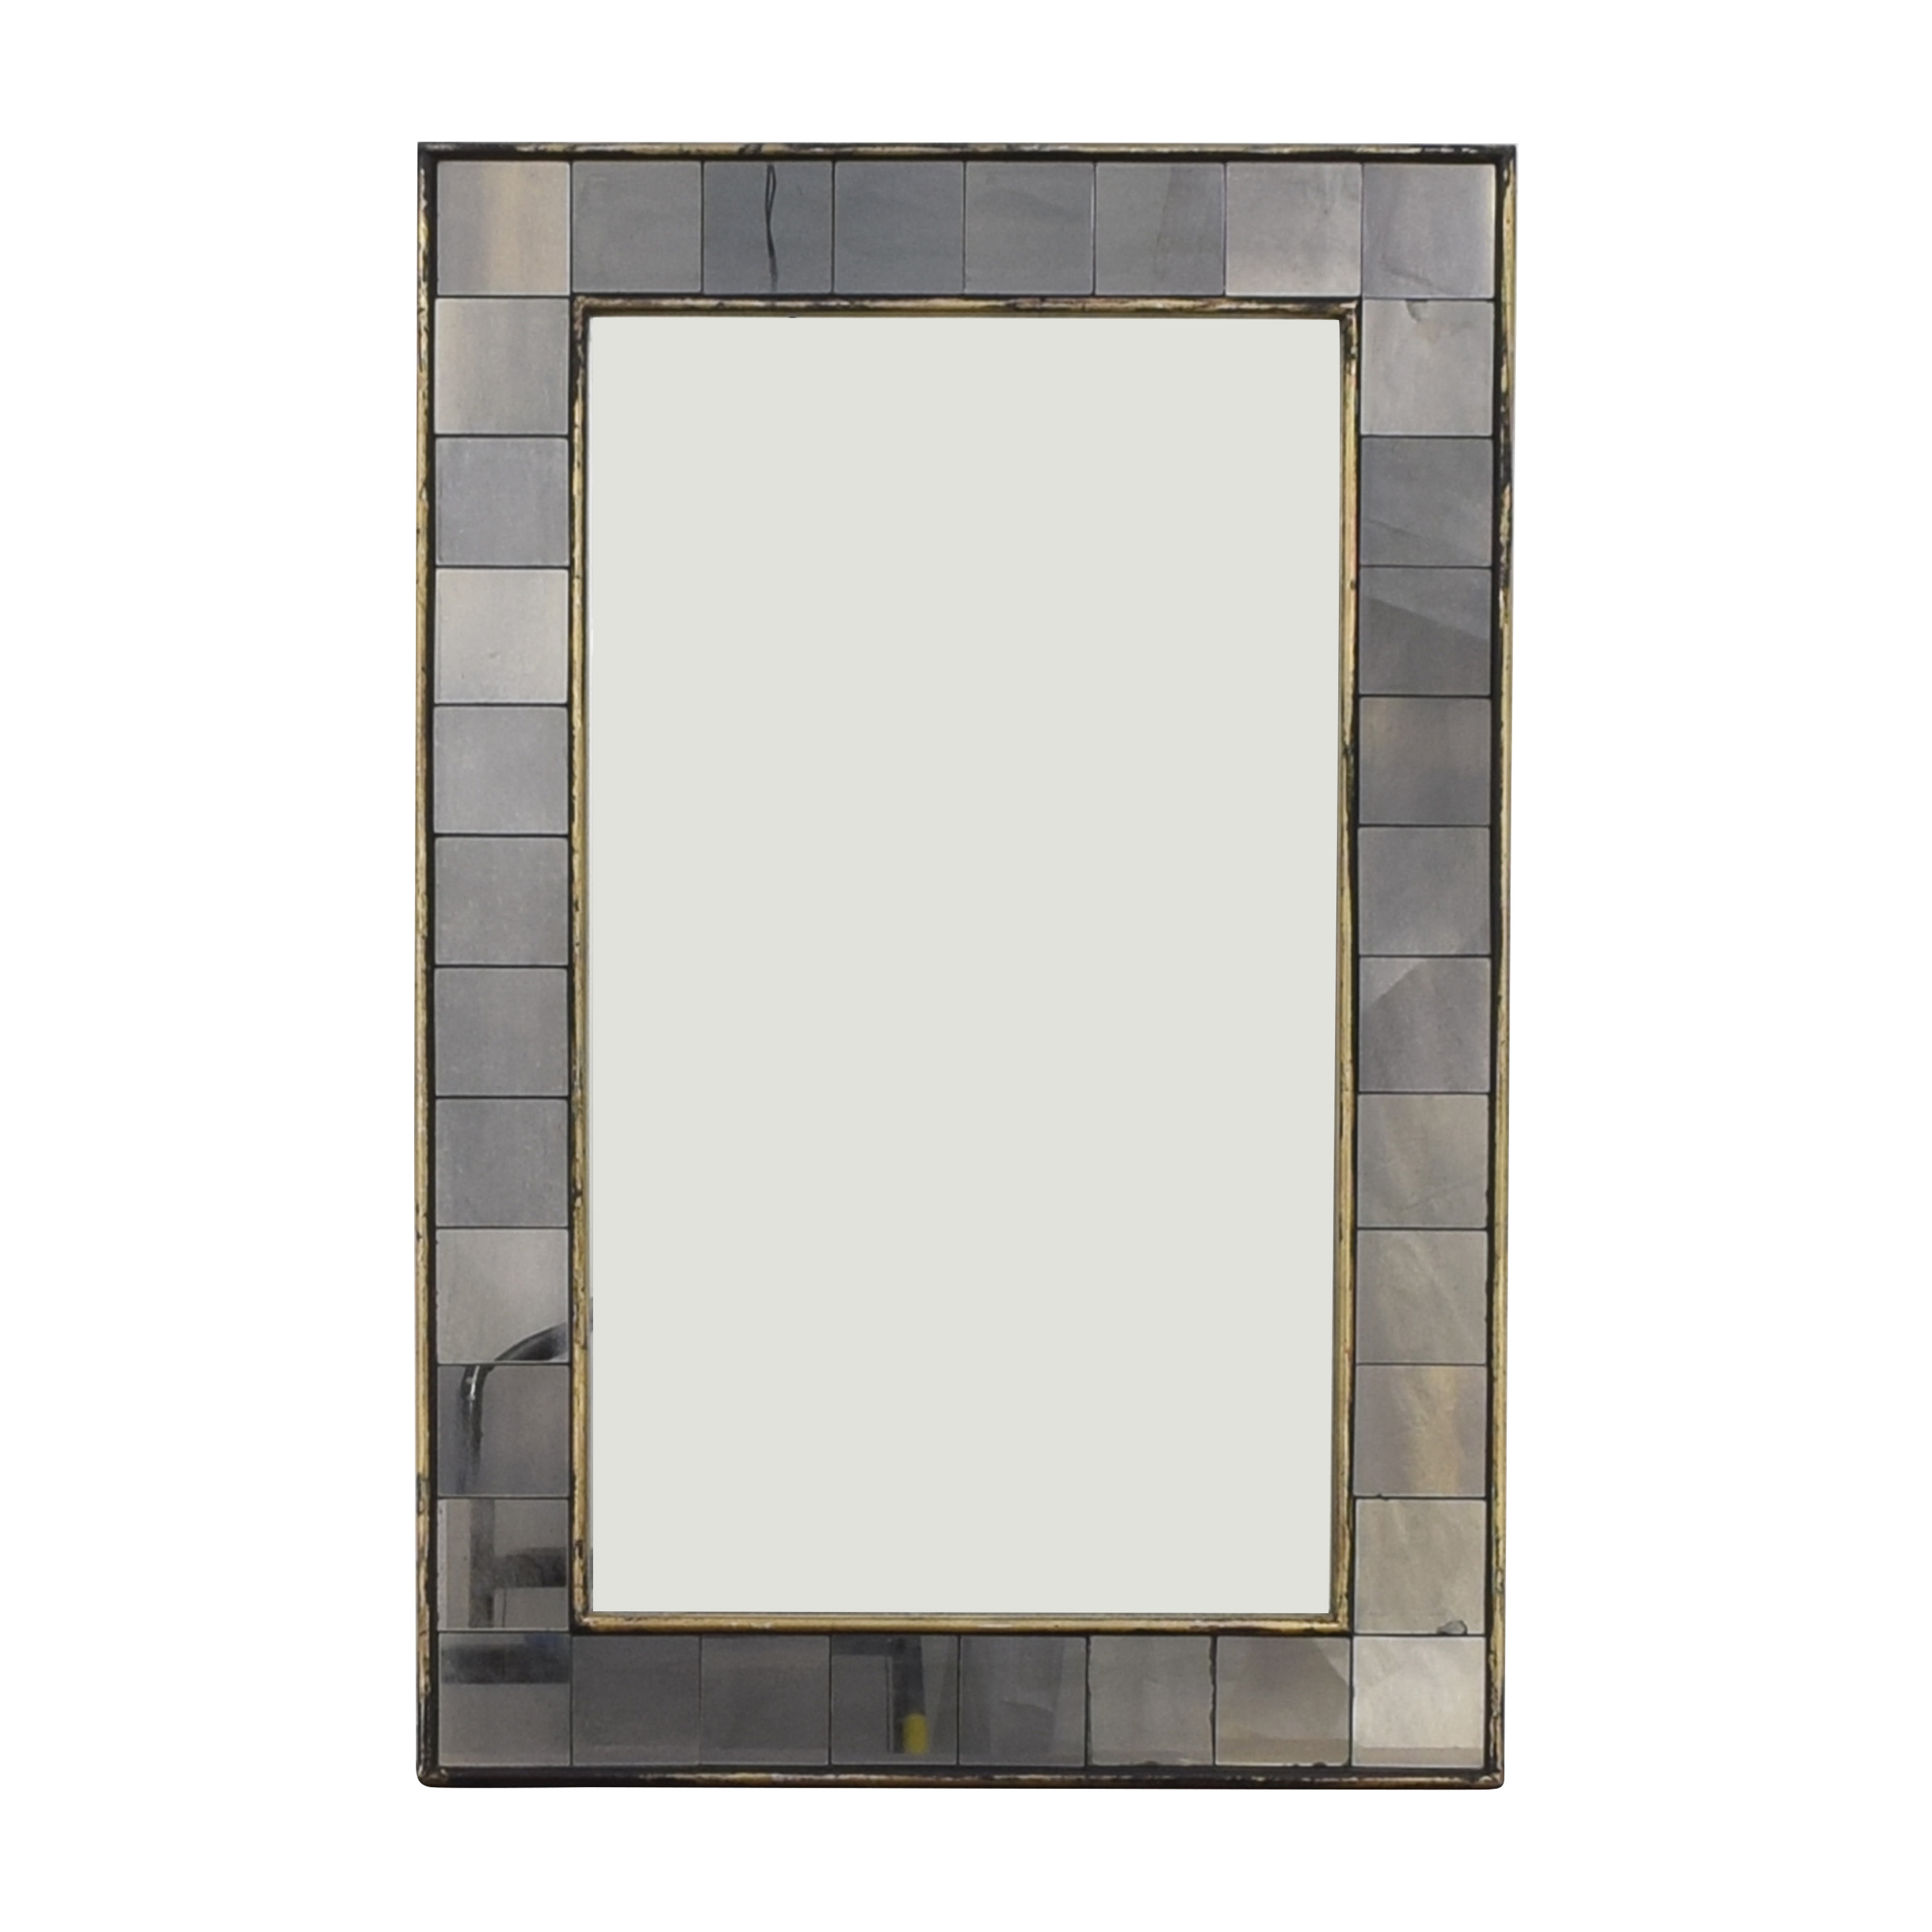 West Elm West Elm Tiled Wall Mirror ct